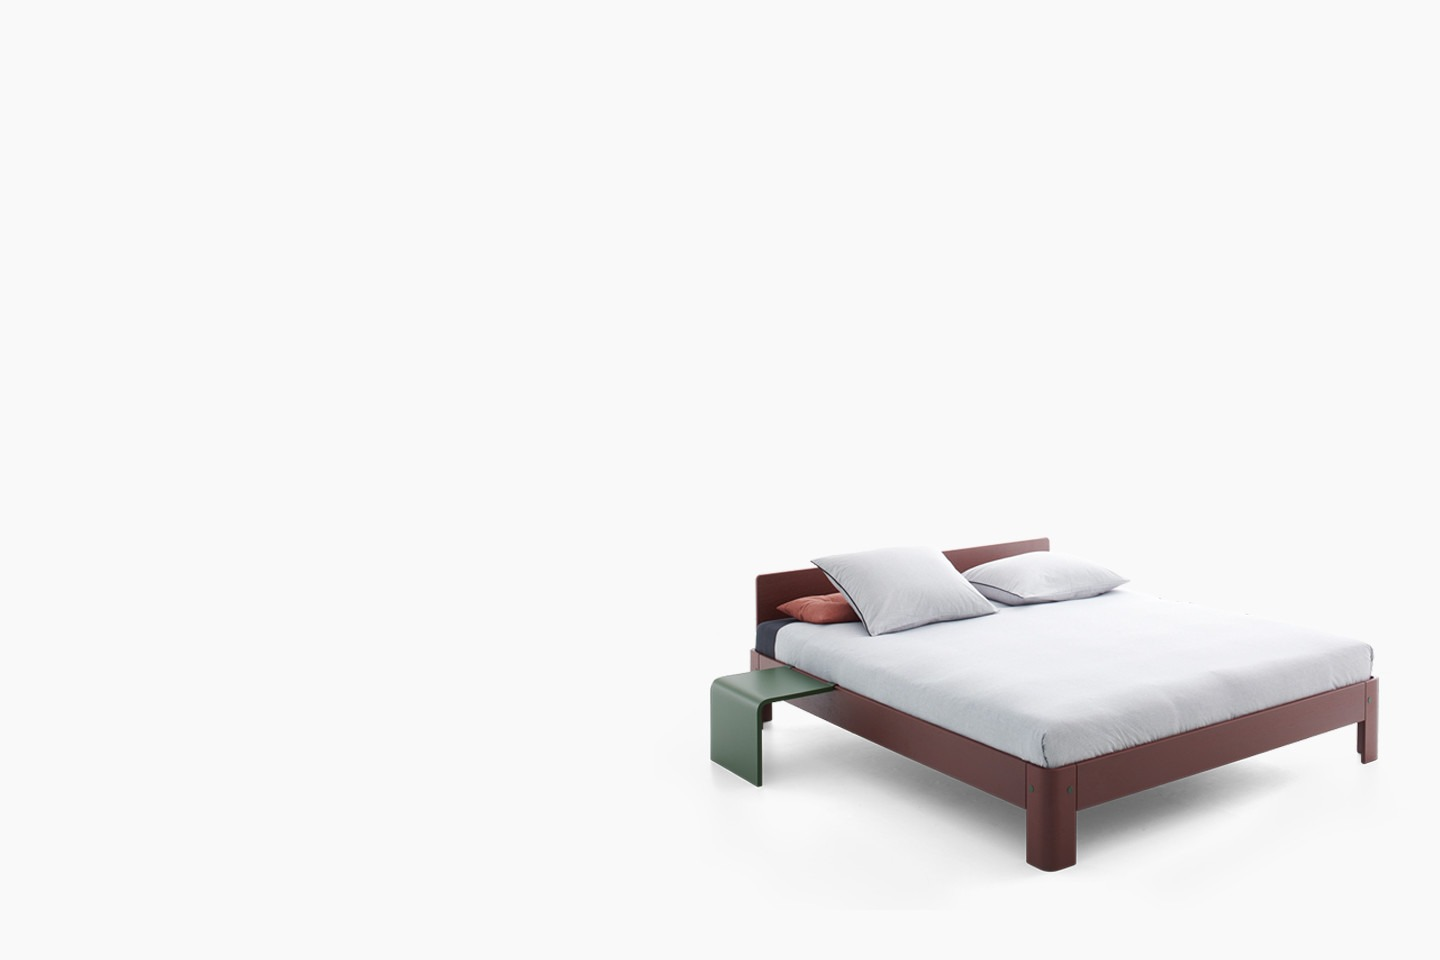 bed auronde ede auping